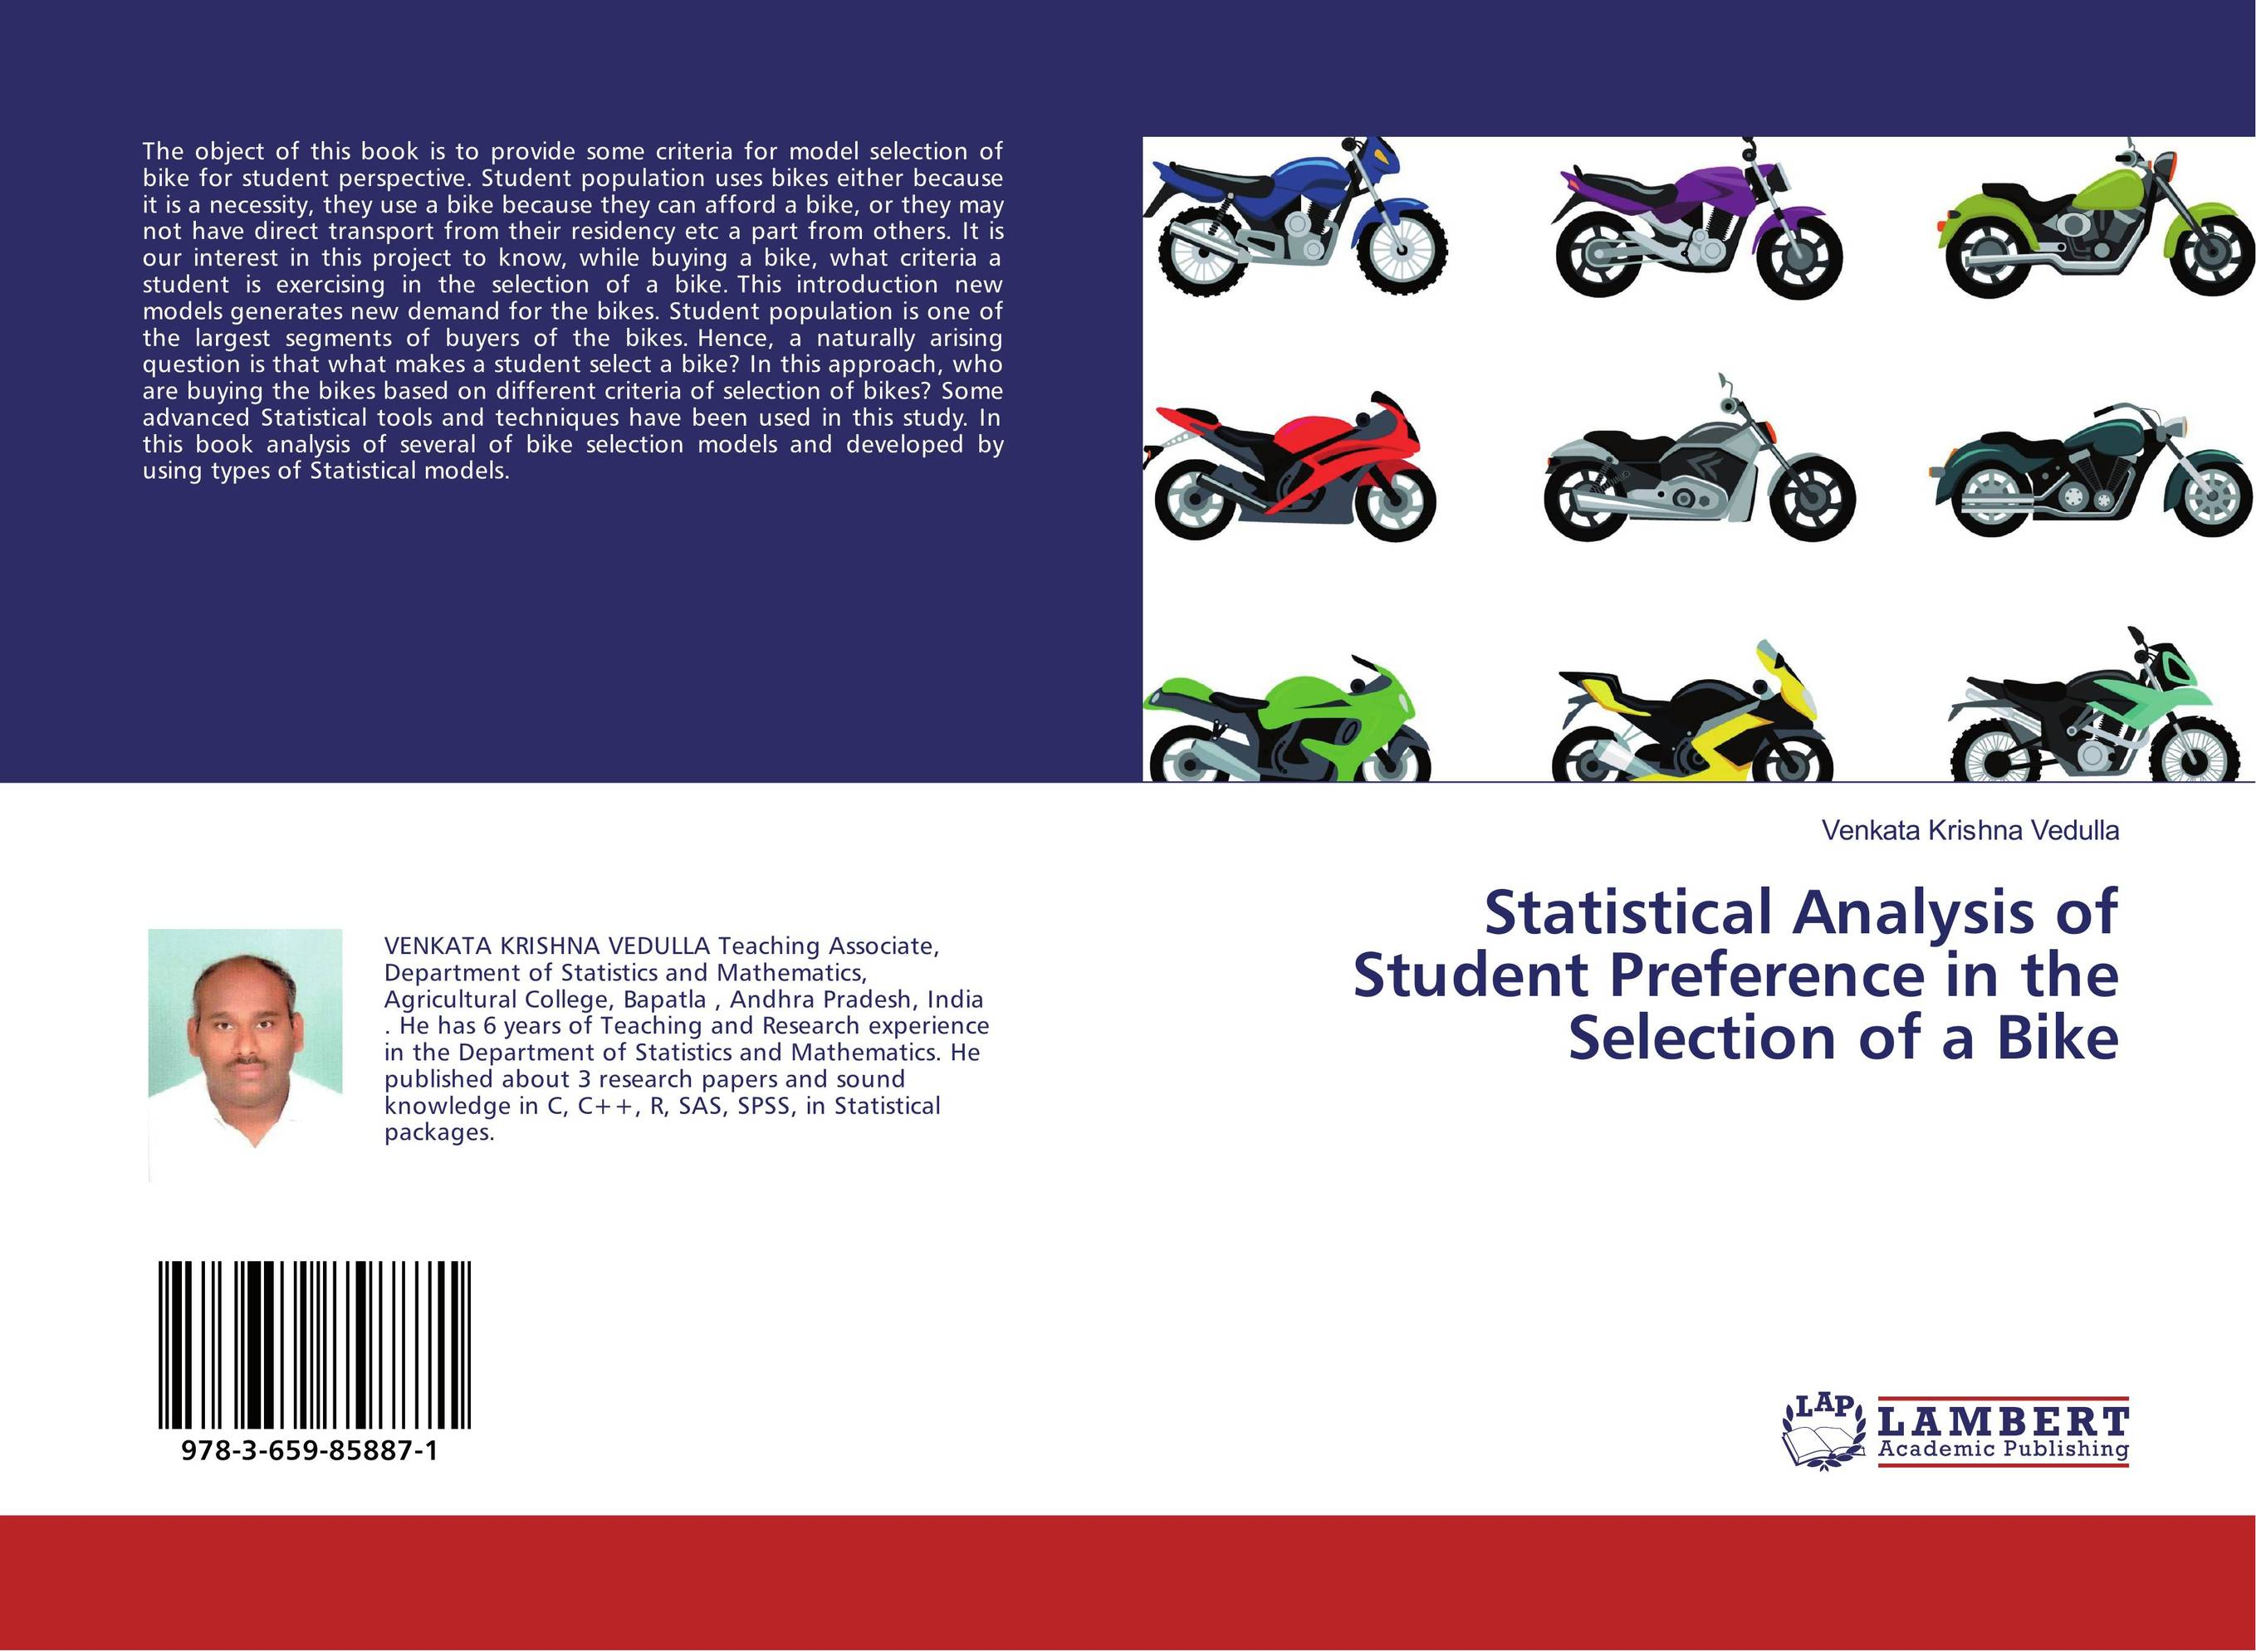 Statistical Analysis of Student Preference in the Selection of a Bike anatoly peresetsky do secrets come out statistical evaluation of student cheating